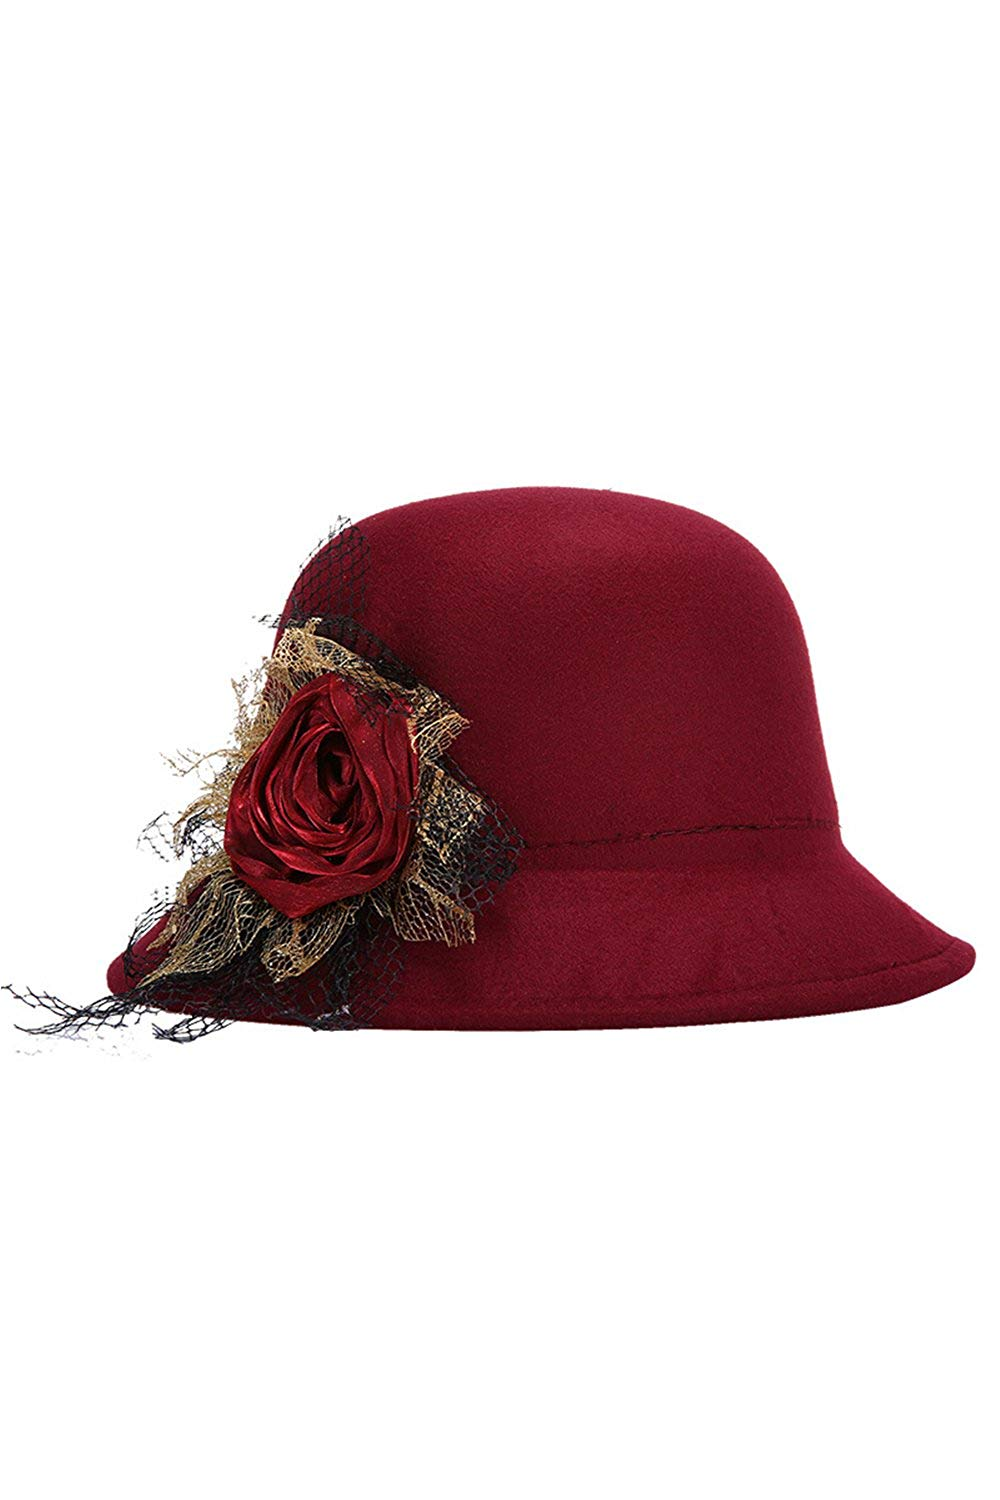 a75f4813252 Cheap Cloche Winter Hat, find Cloche Winter Hat deals on line at ...